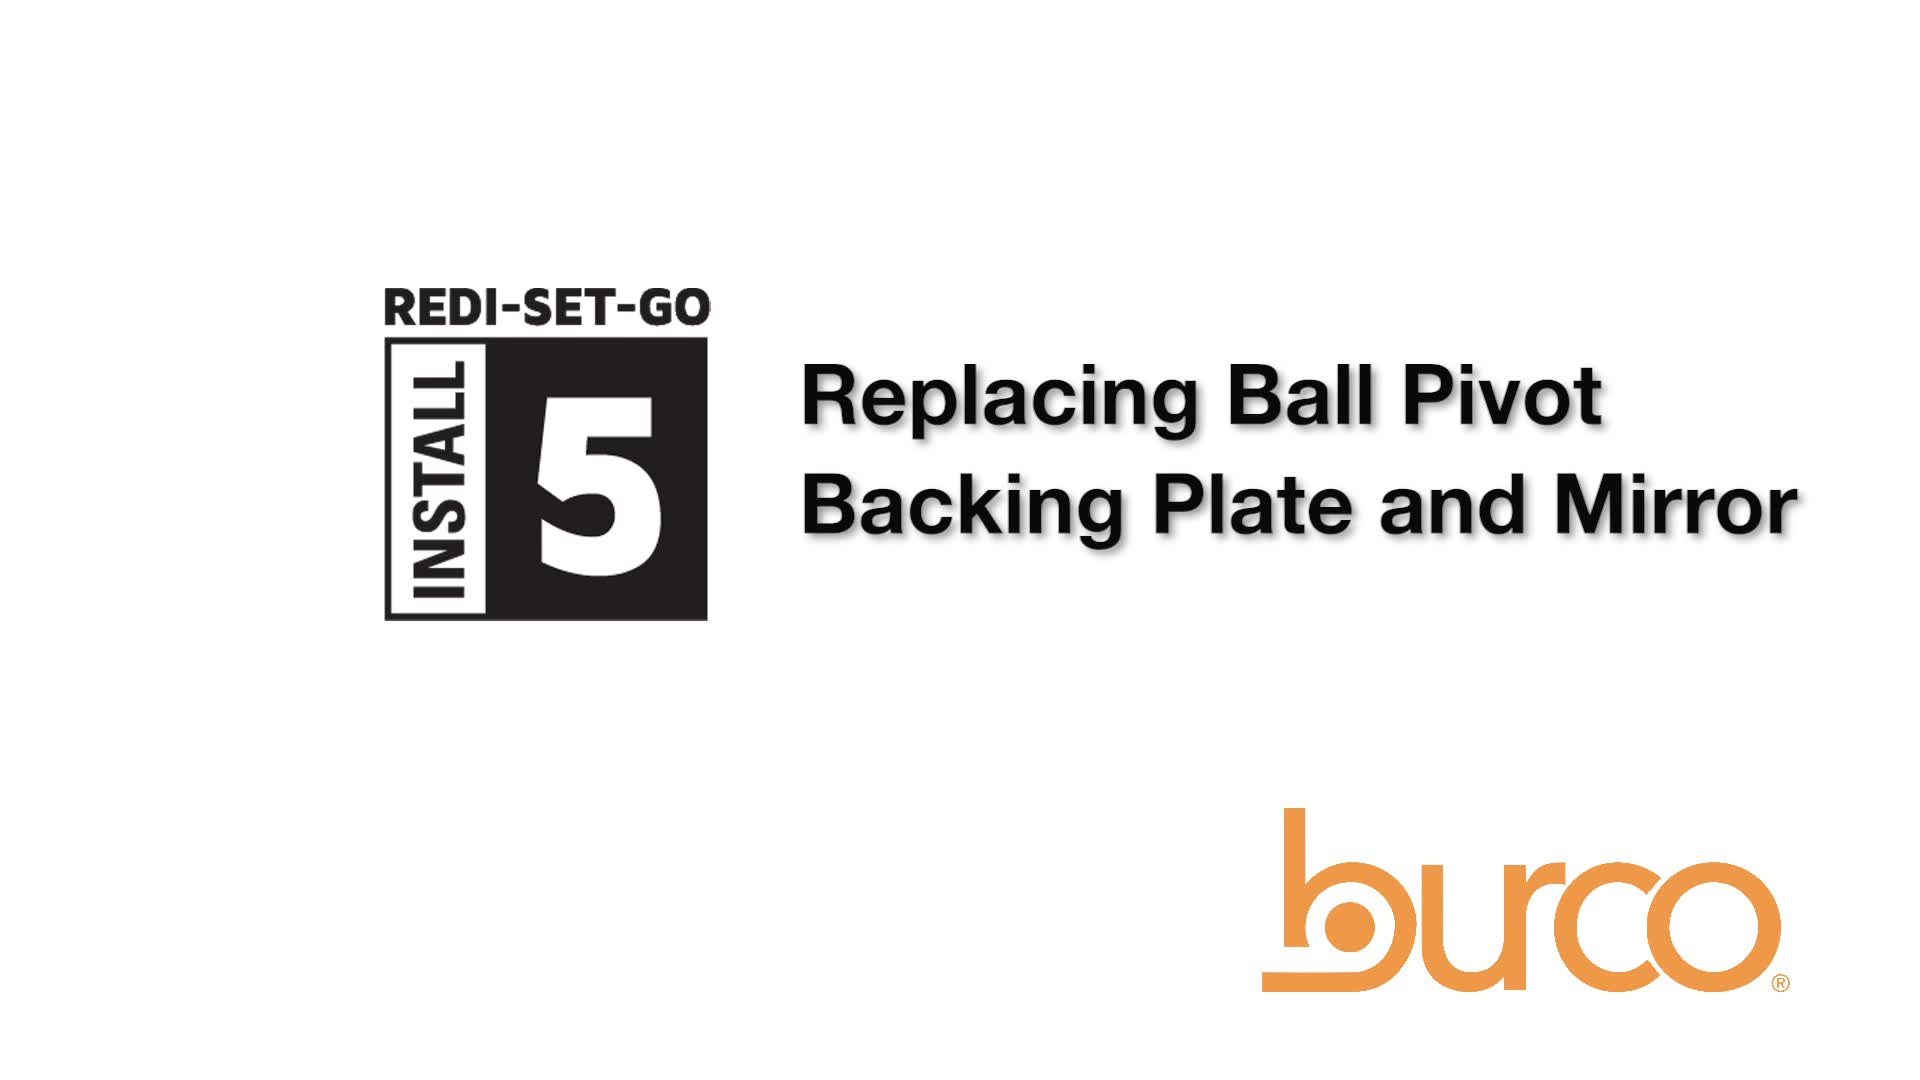 Replacement of the Ball Pivot Backing Plate and Mirror